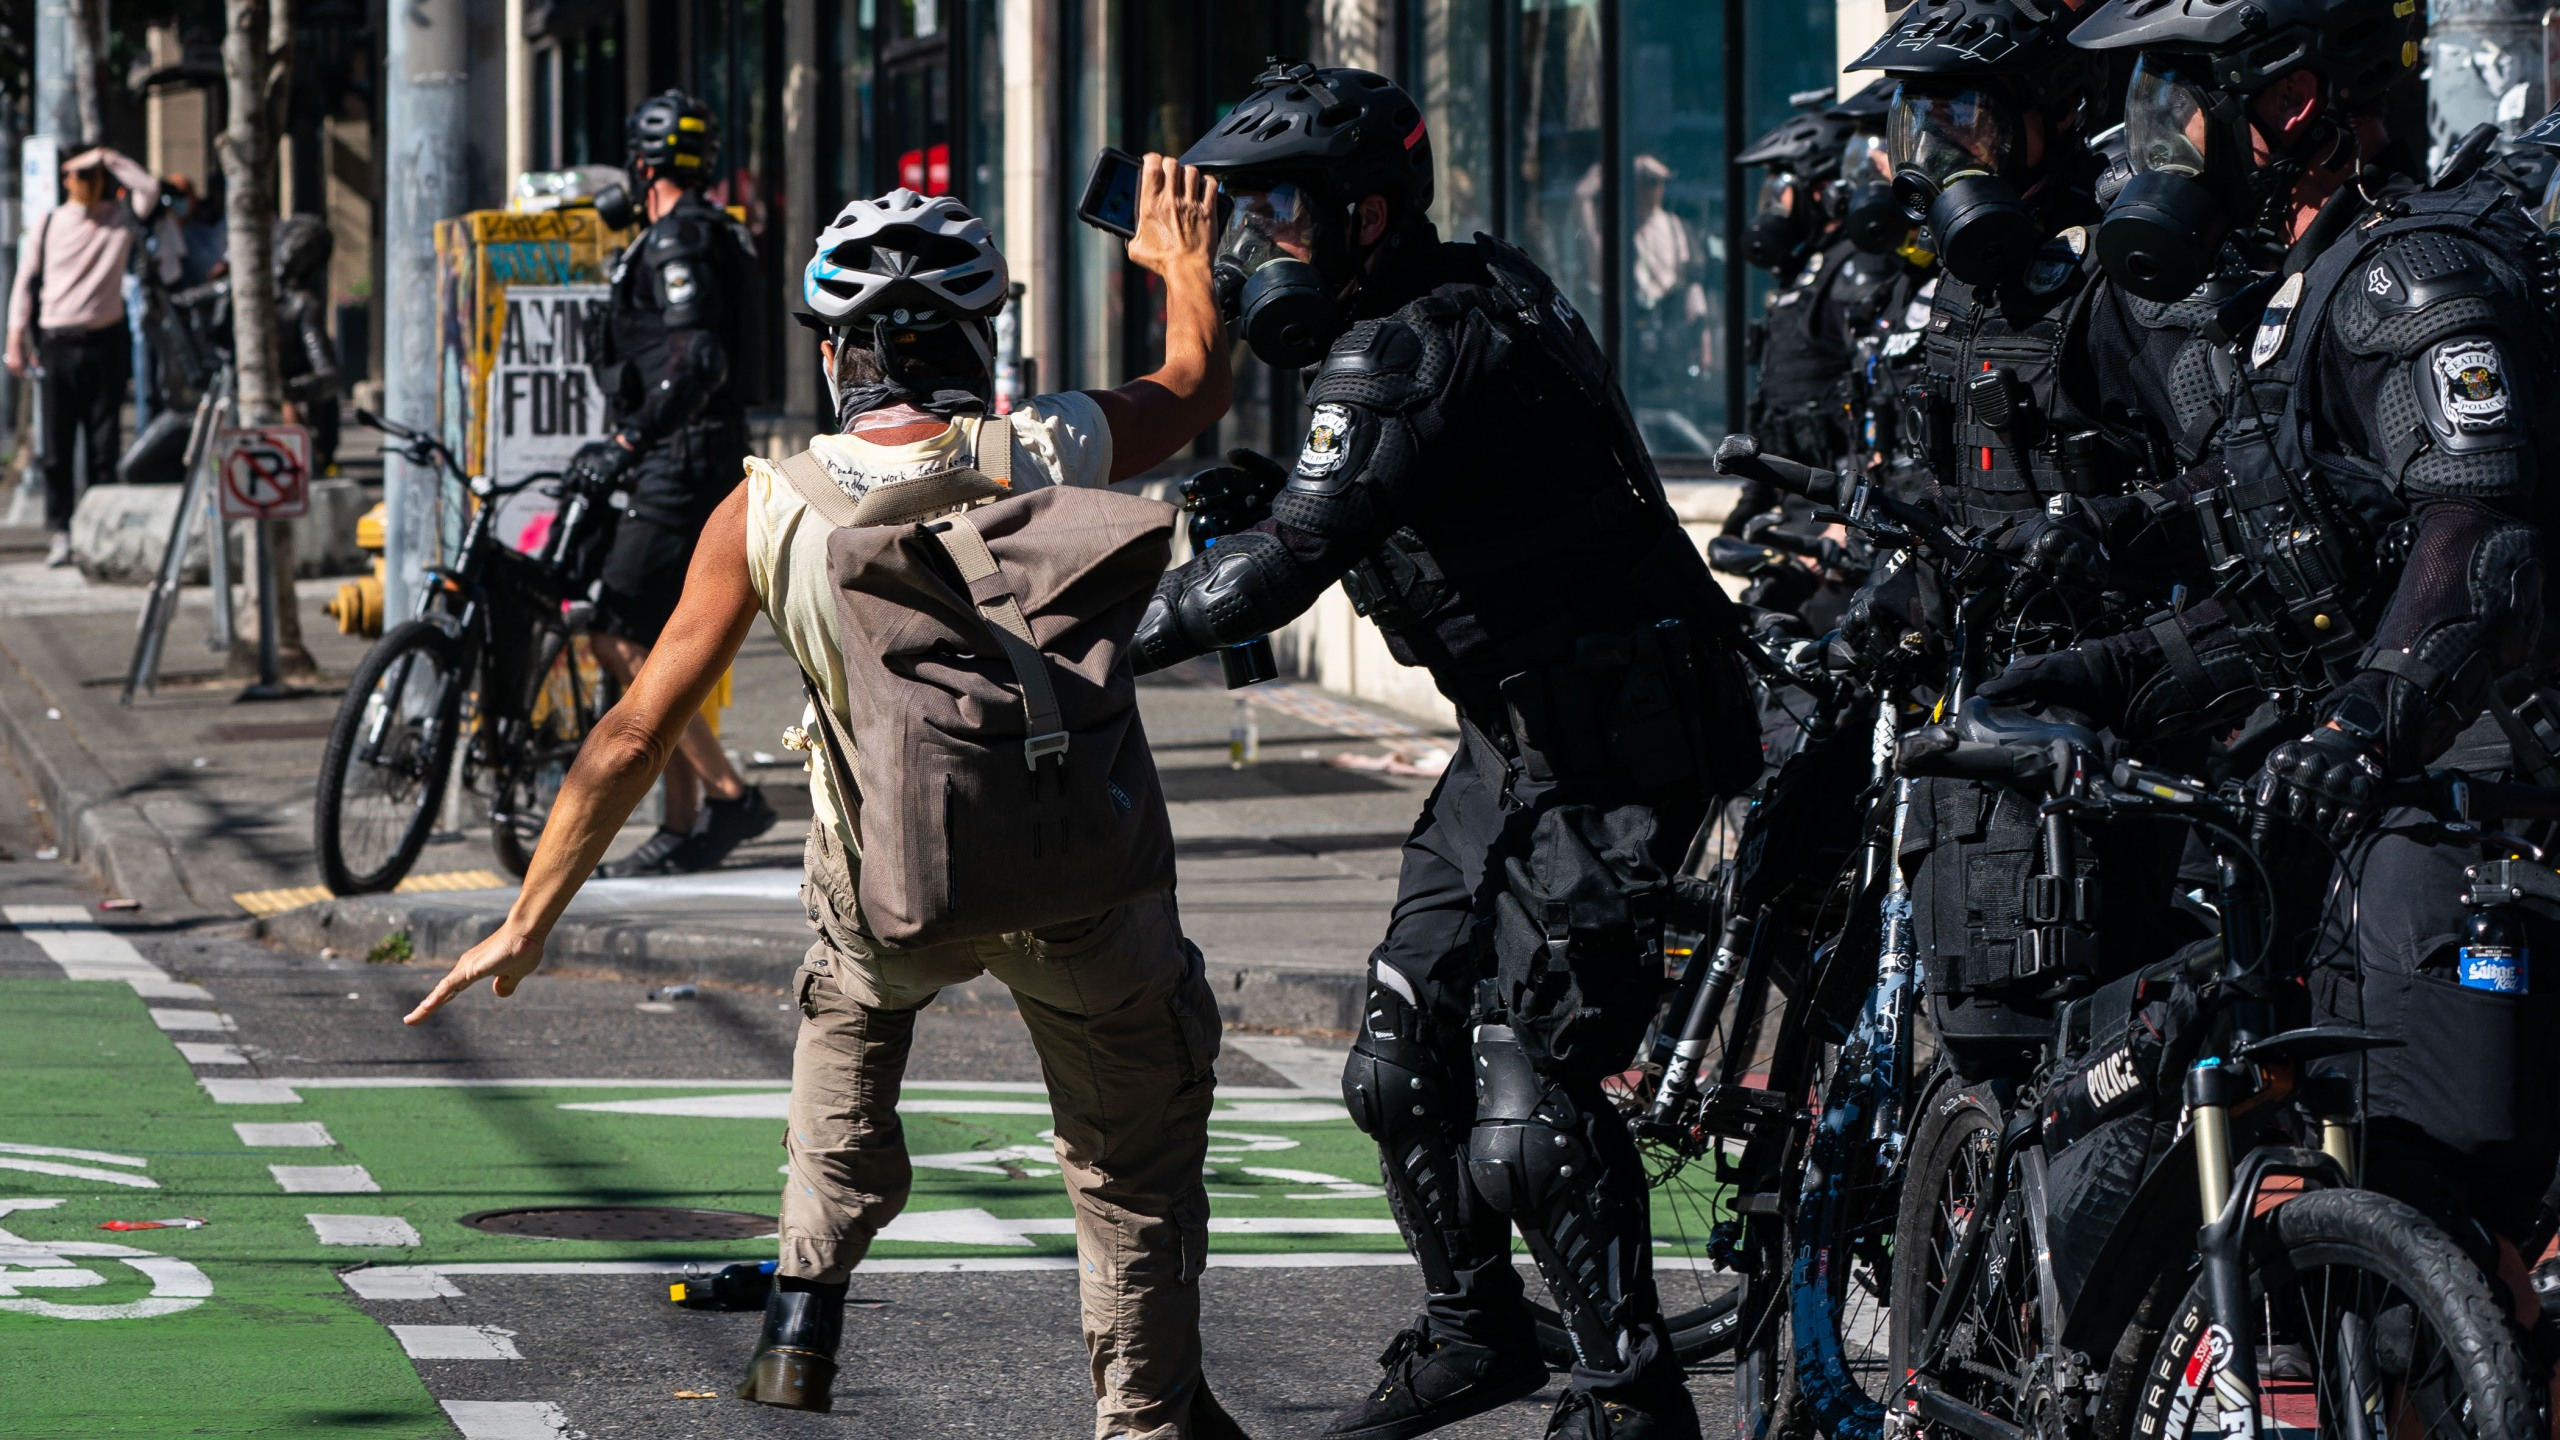 Police push a demonstrator to the ground during protests on July 25, 2020, in Seattle, Washington. (David Ryder/Getty Images)